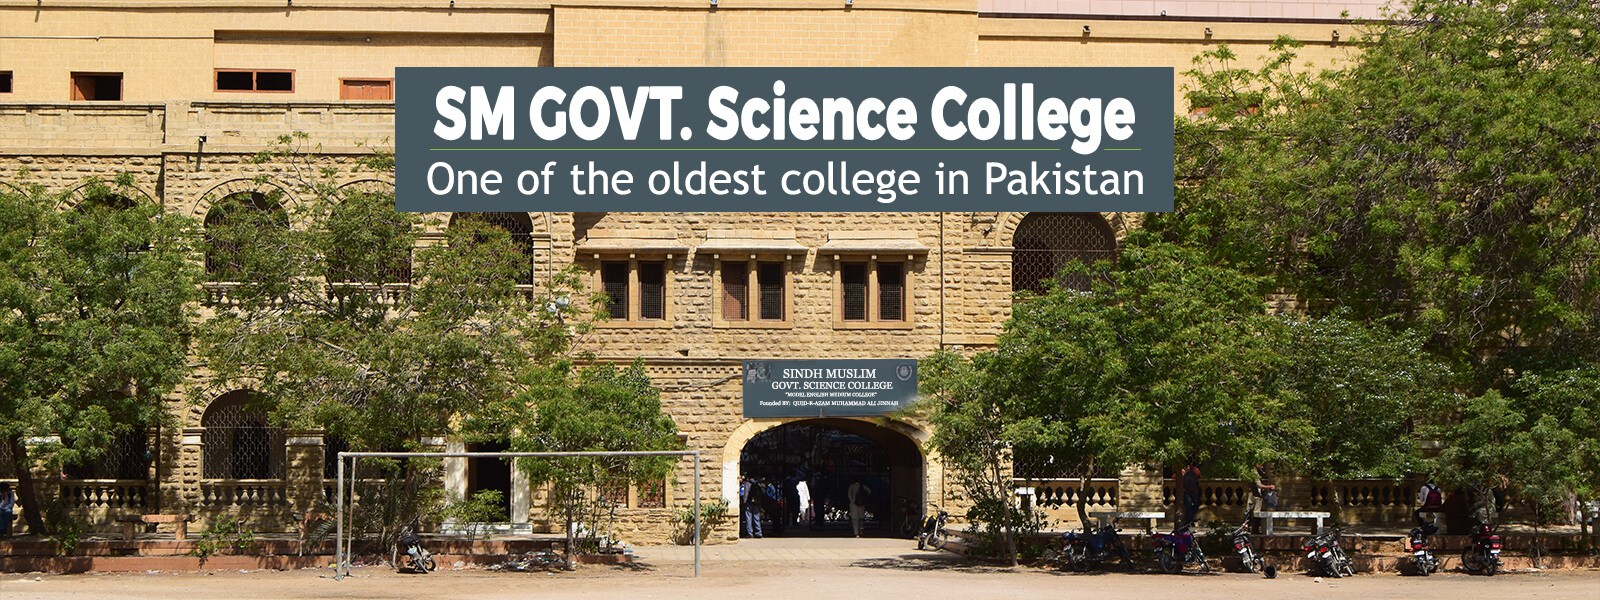 sindh-muslim-government-science-college-karachi